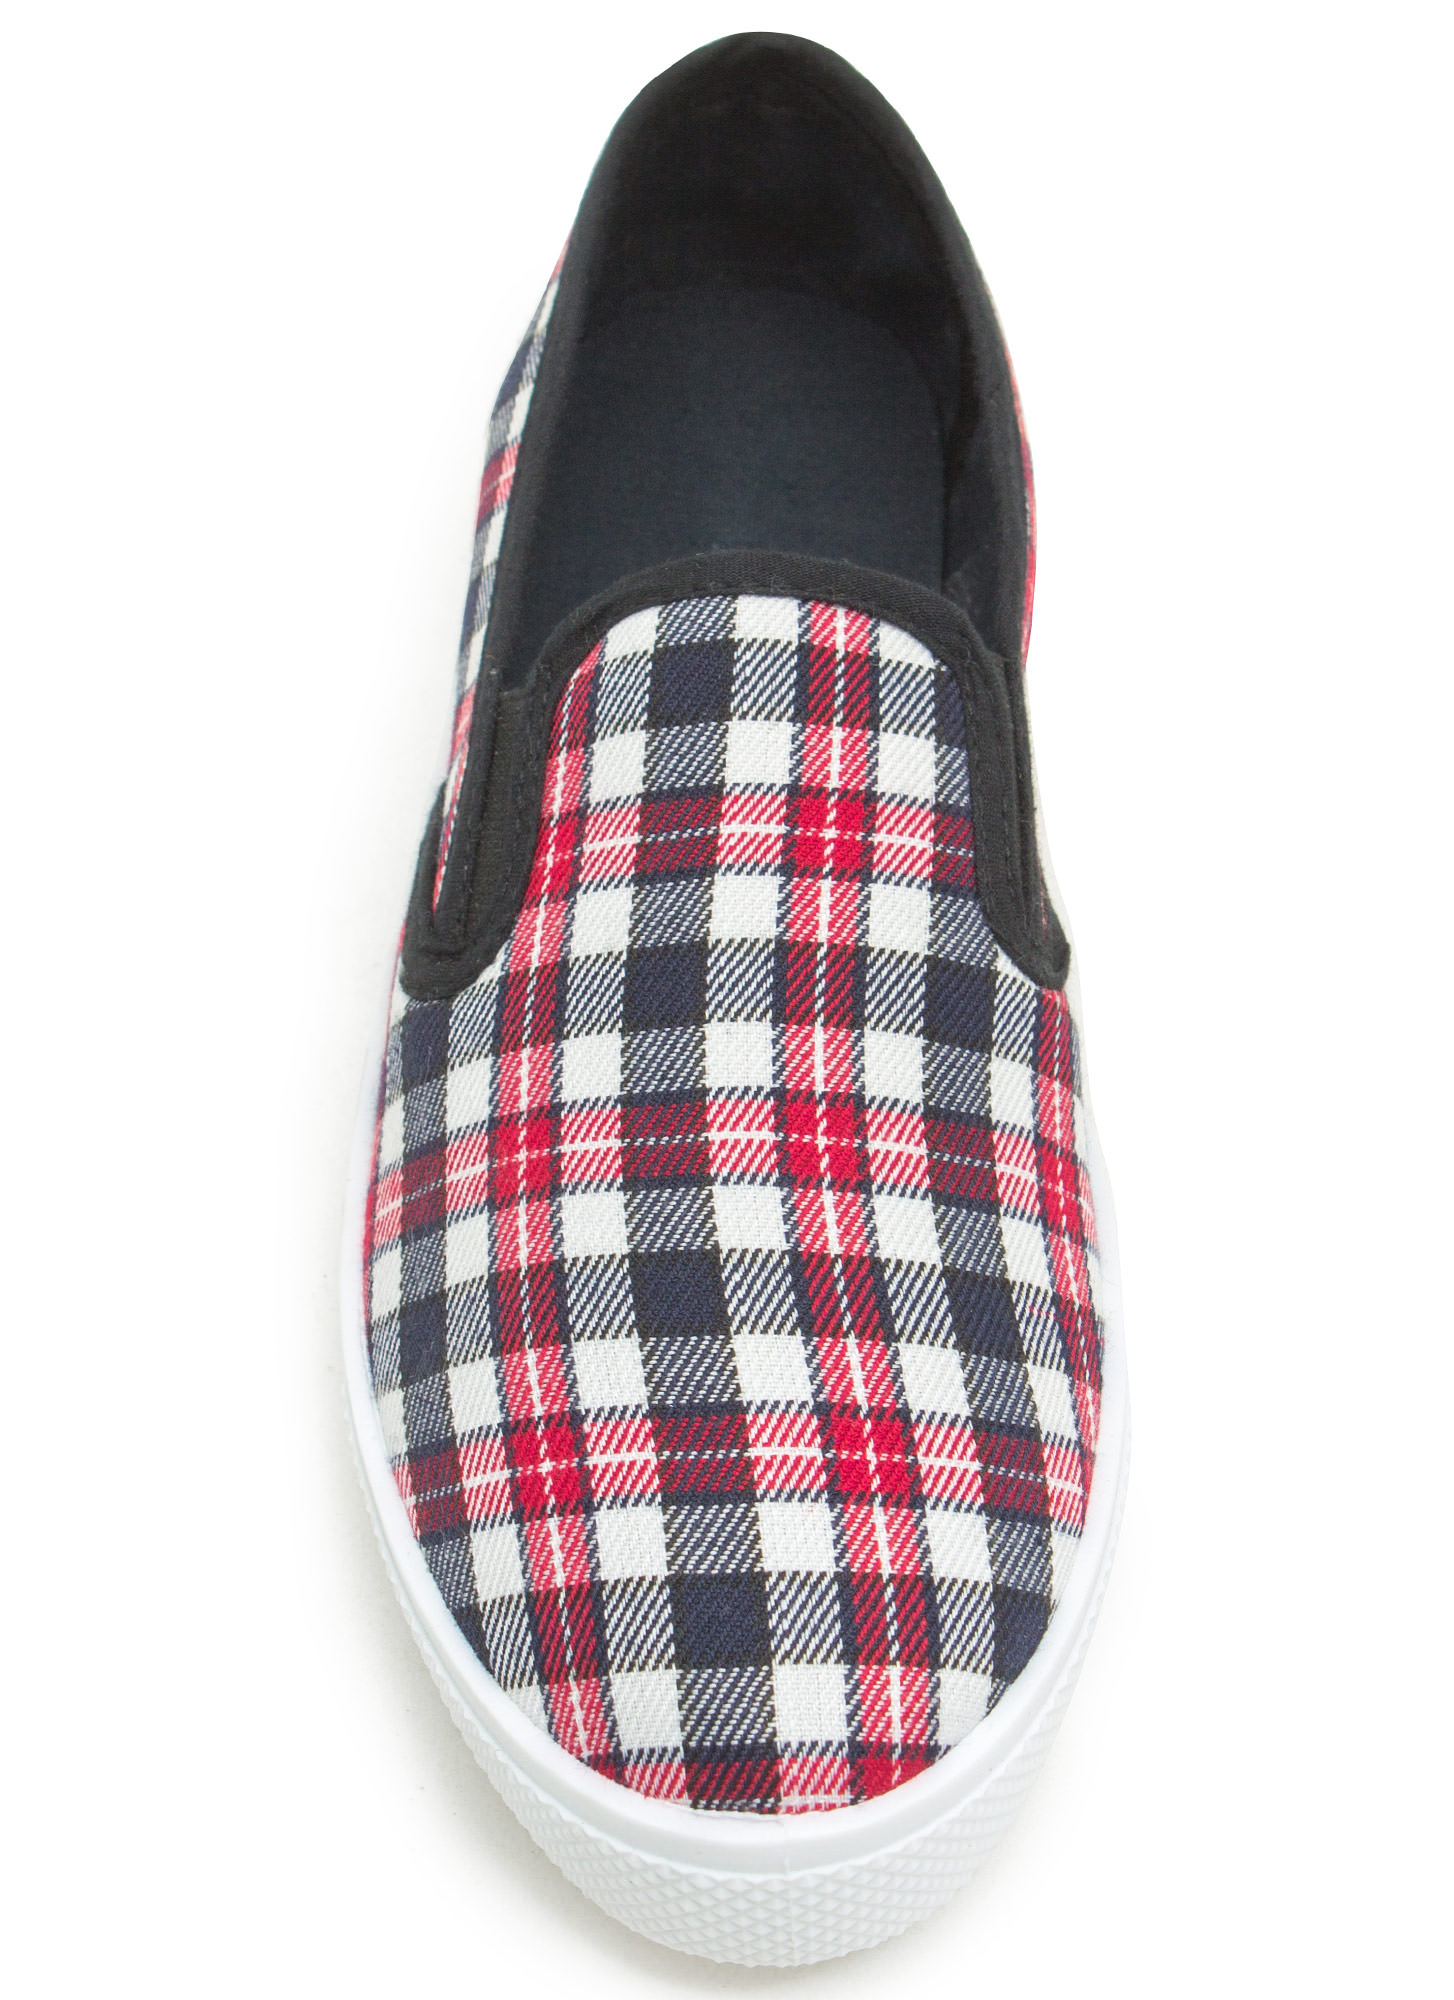 Skate Park Print-cess Slip-On Sneakers NAVY